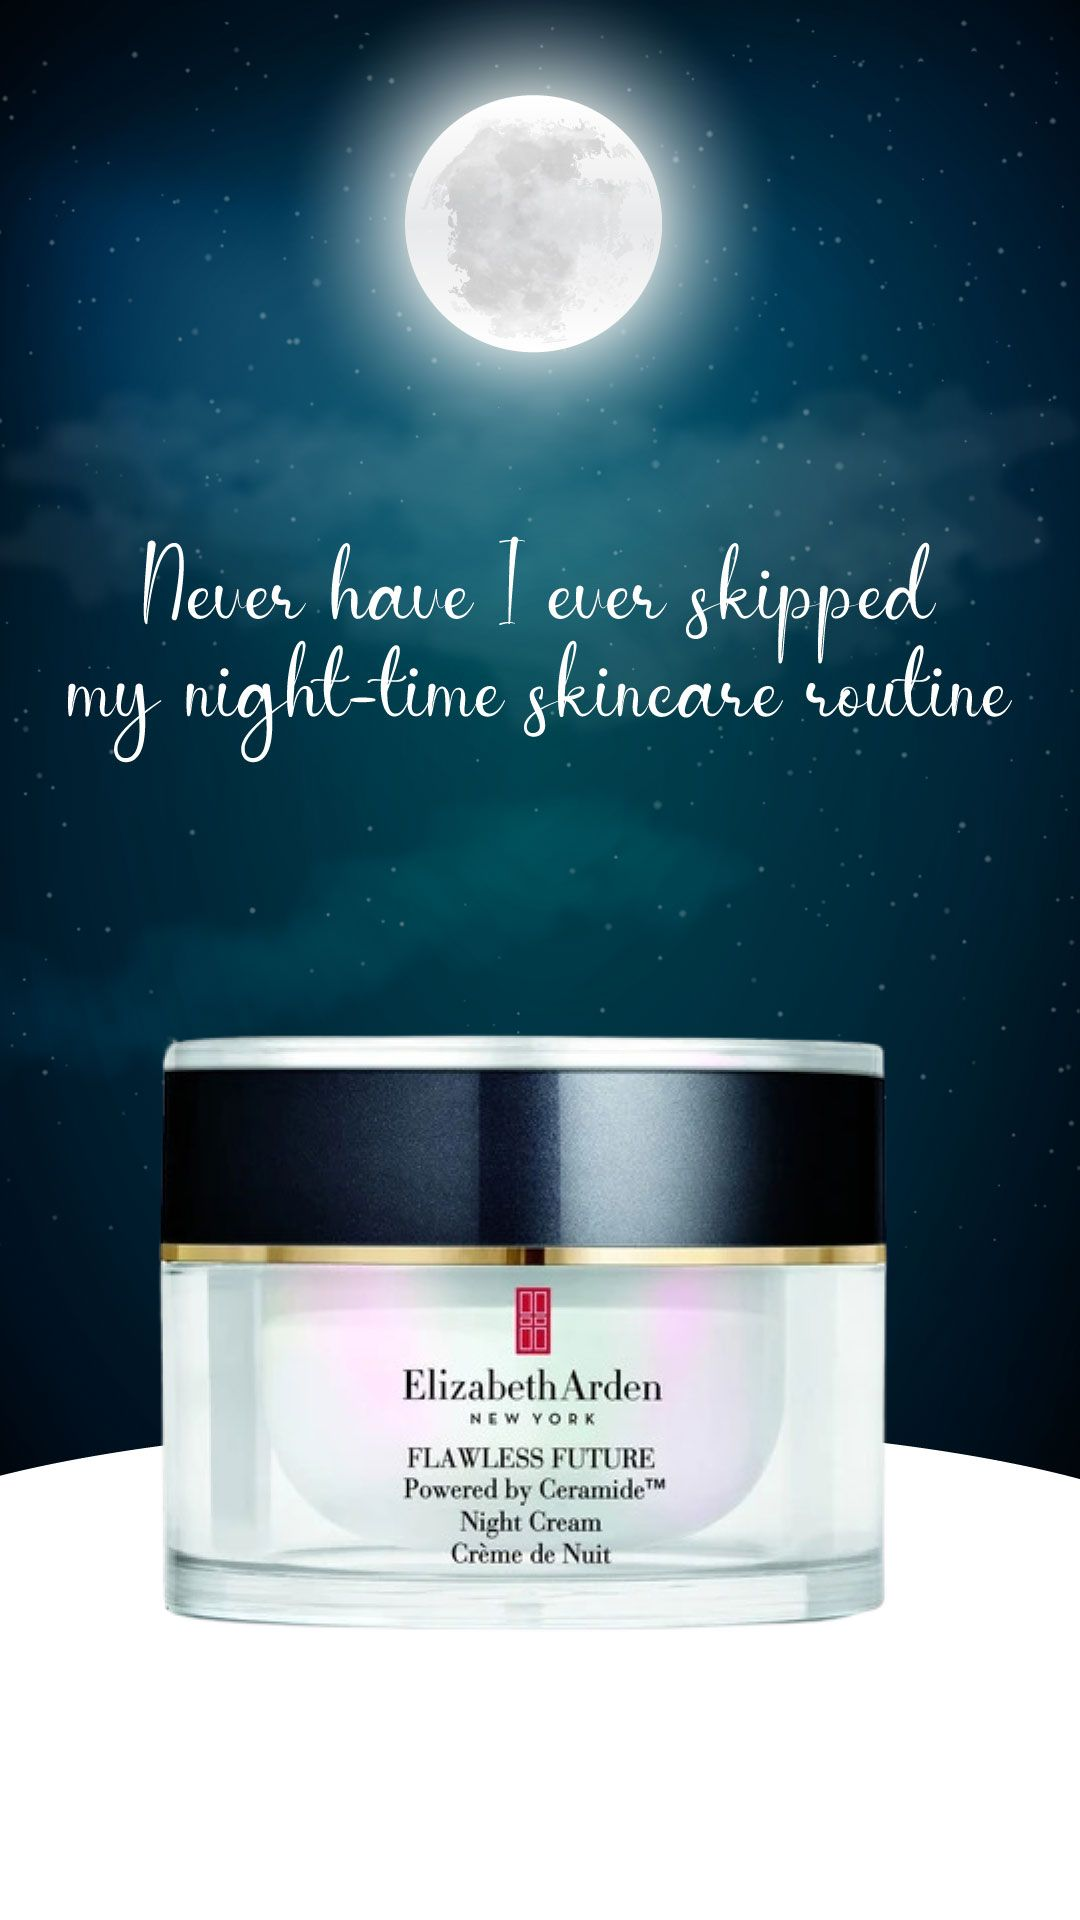 Elizabeth Arden Flawless Future Powered By Ceramide Night Cream In 2020 Night Creams Ceramides Elizabeth Arden